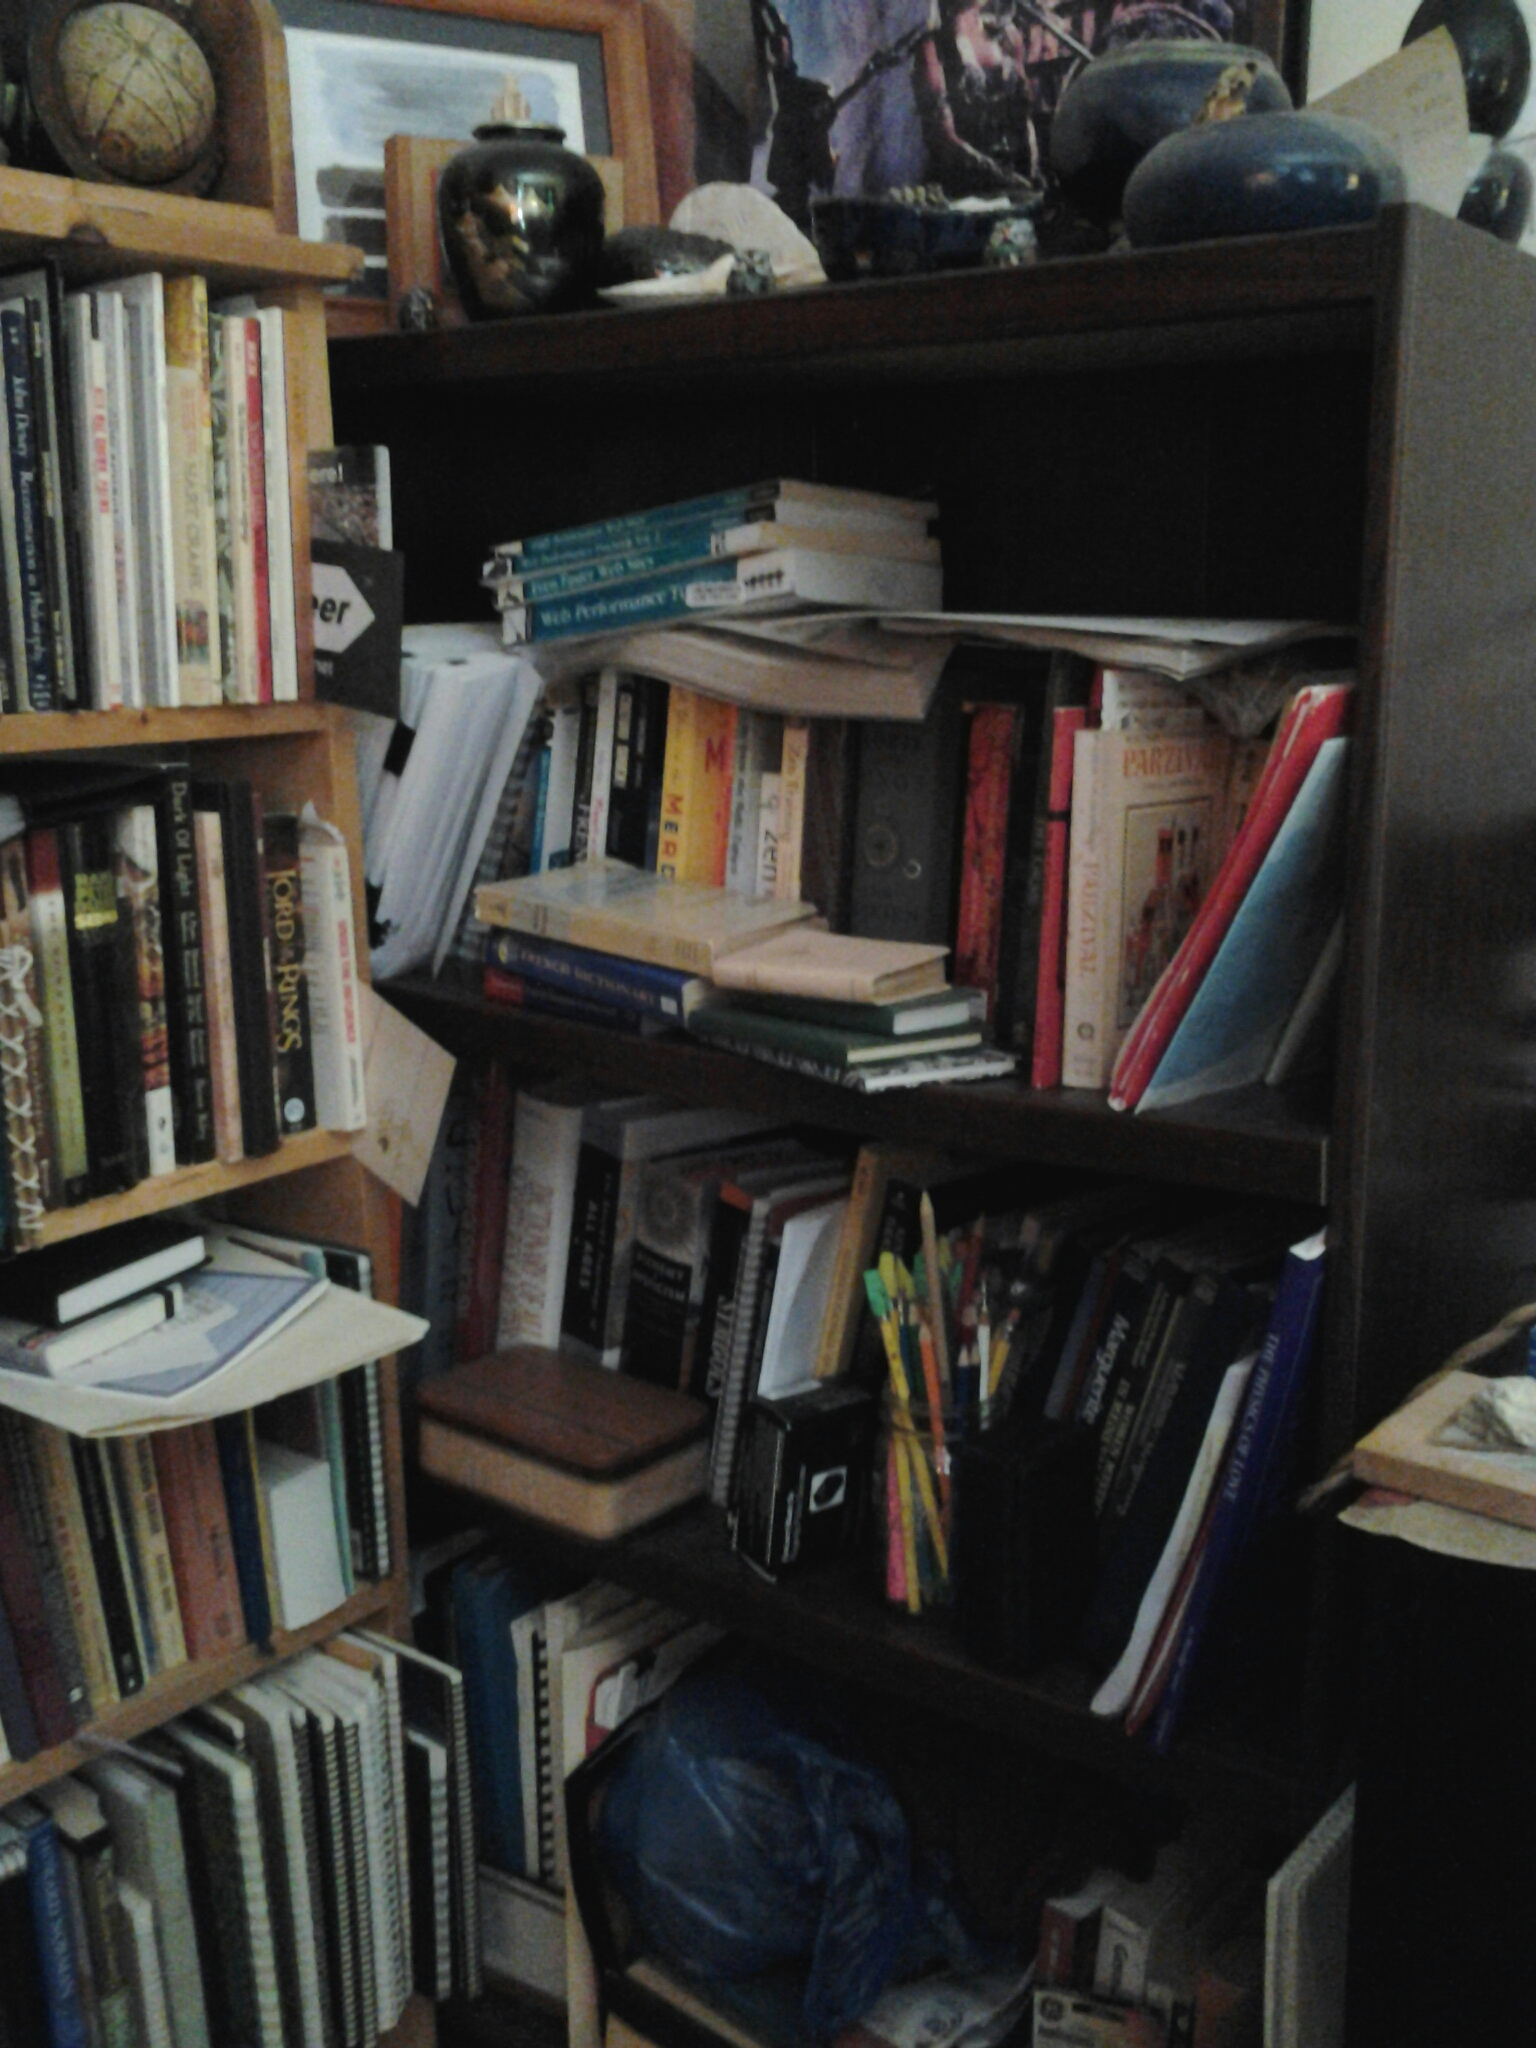 Bookshelf 4 - Long-neglected collection of Medieval, alchemy, esoterica